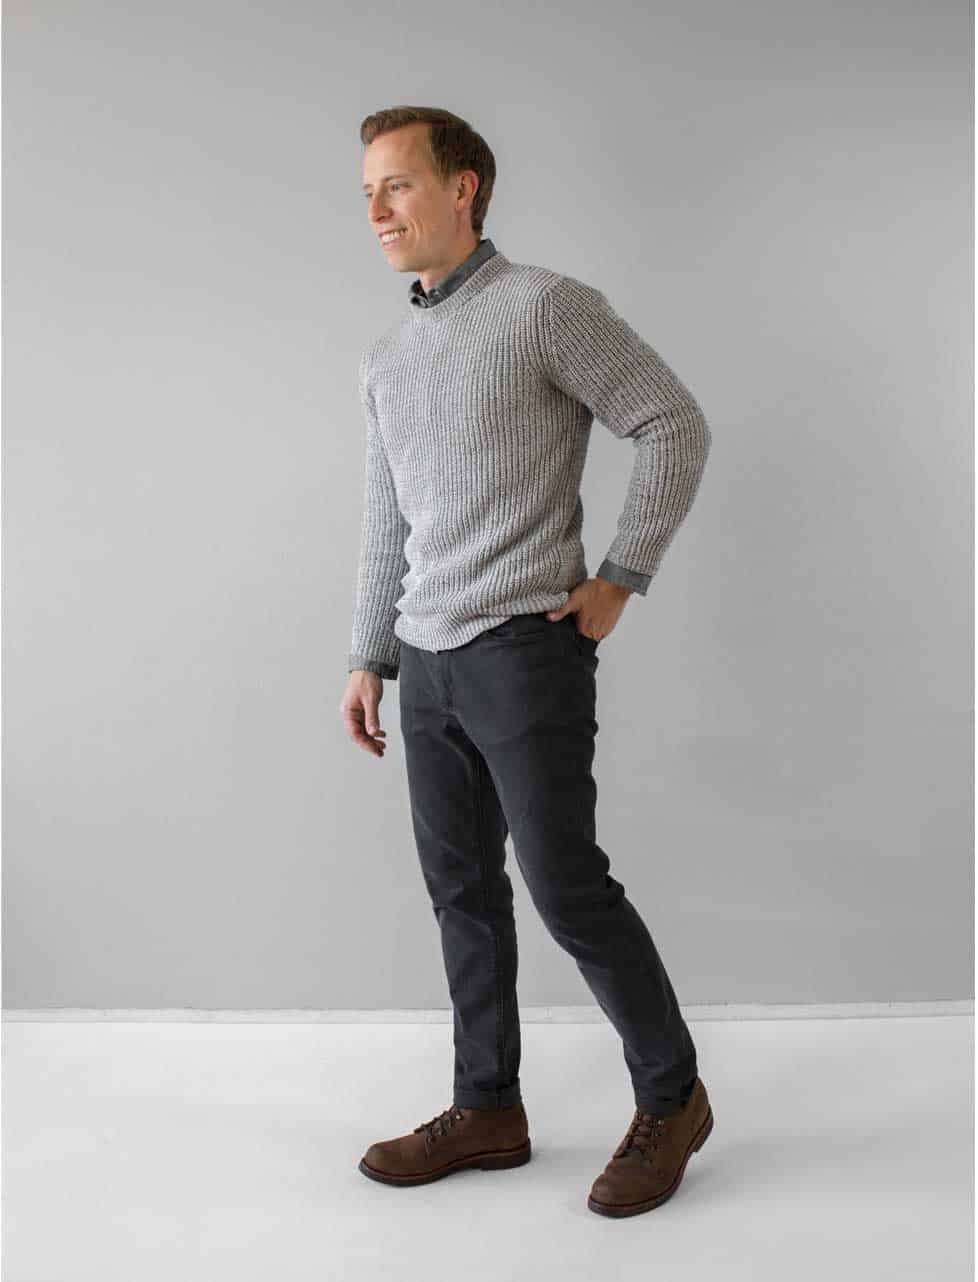 men outfit ideas gray sweater charcoal gray jeans brown chippewa boots